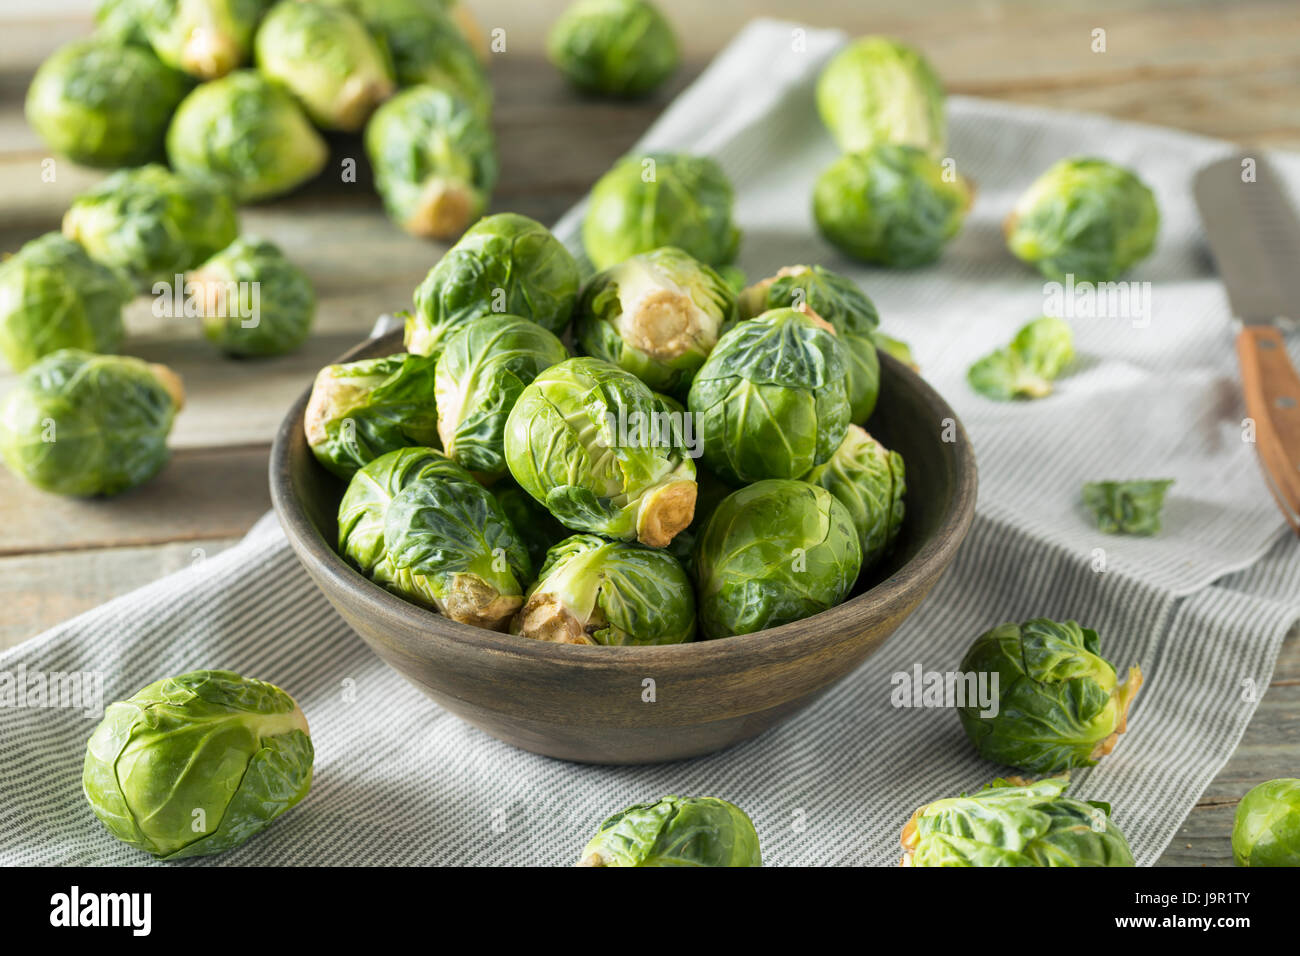 Raw Organic Green Brussel Sprouts Ready to Cook With - Stock Image